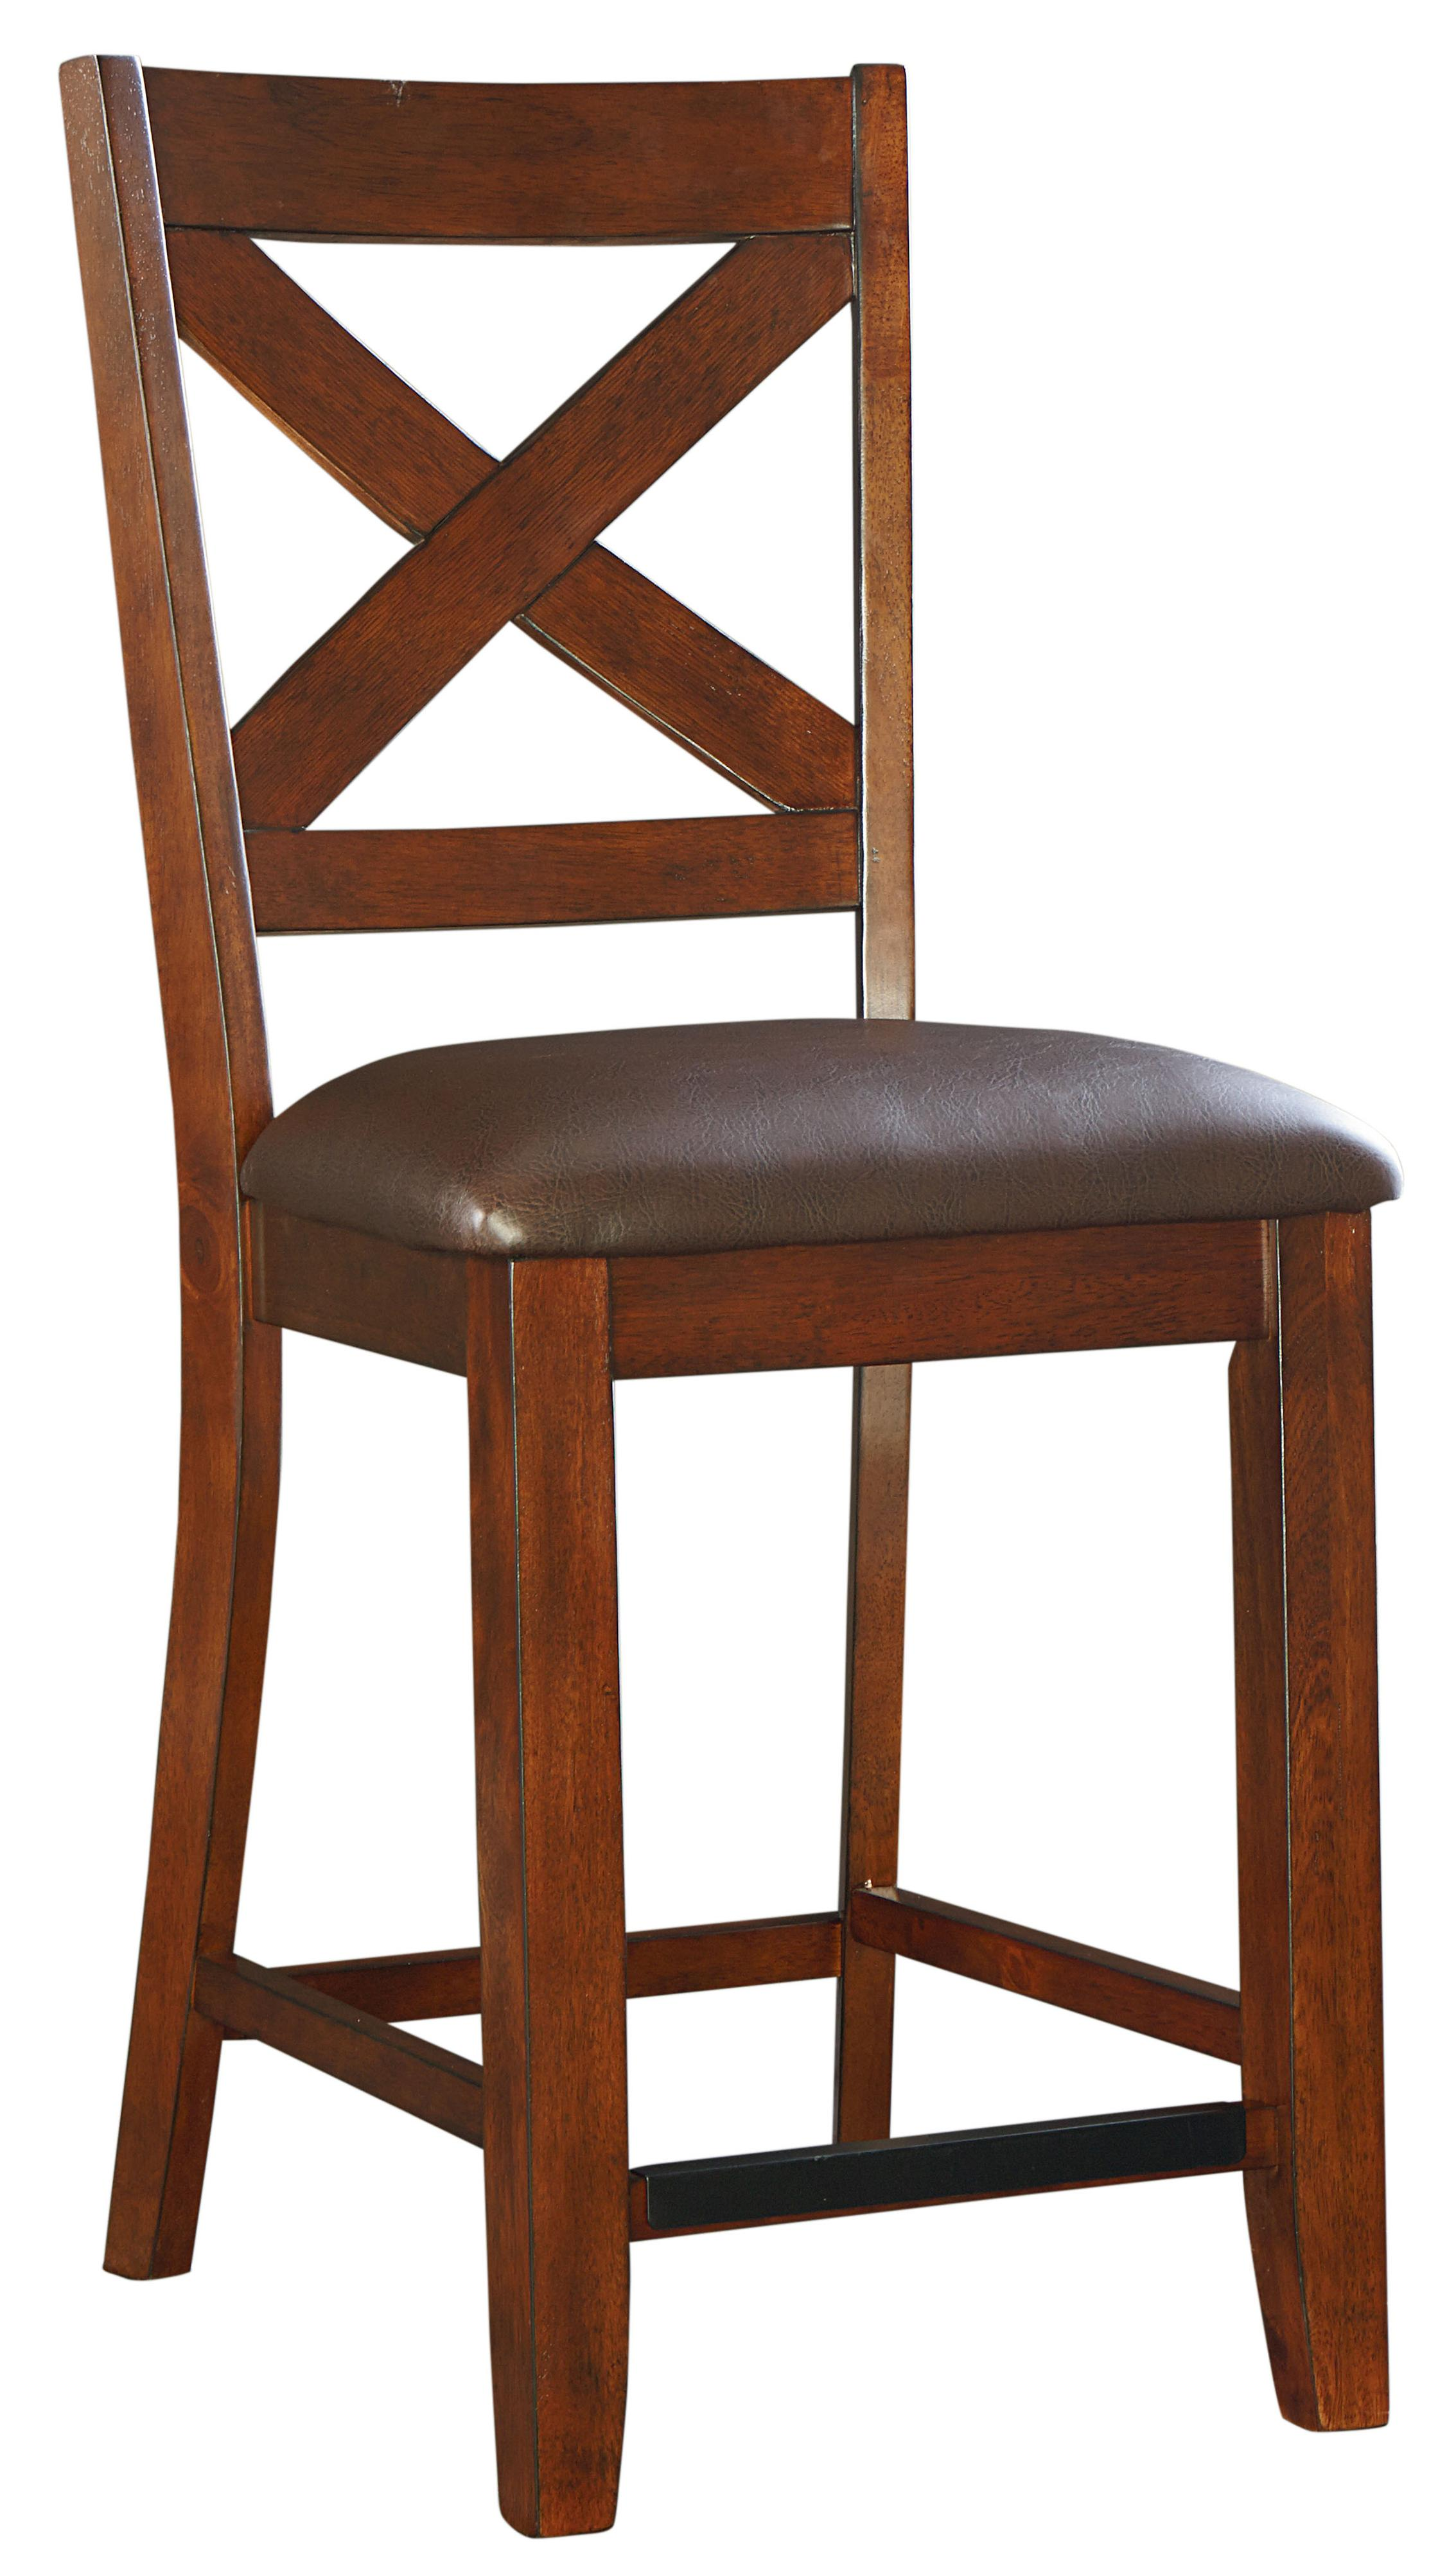 Fabric Counter Height Bar Stools Omaha Brown Counter Height Bar Stool With Upholstered Seat And X Back By Standard Furniture At Dunk Bright Furniture